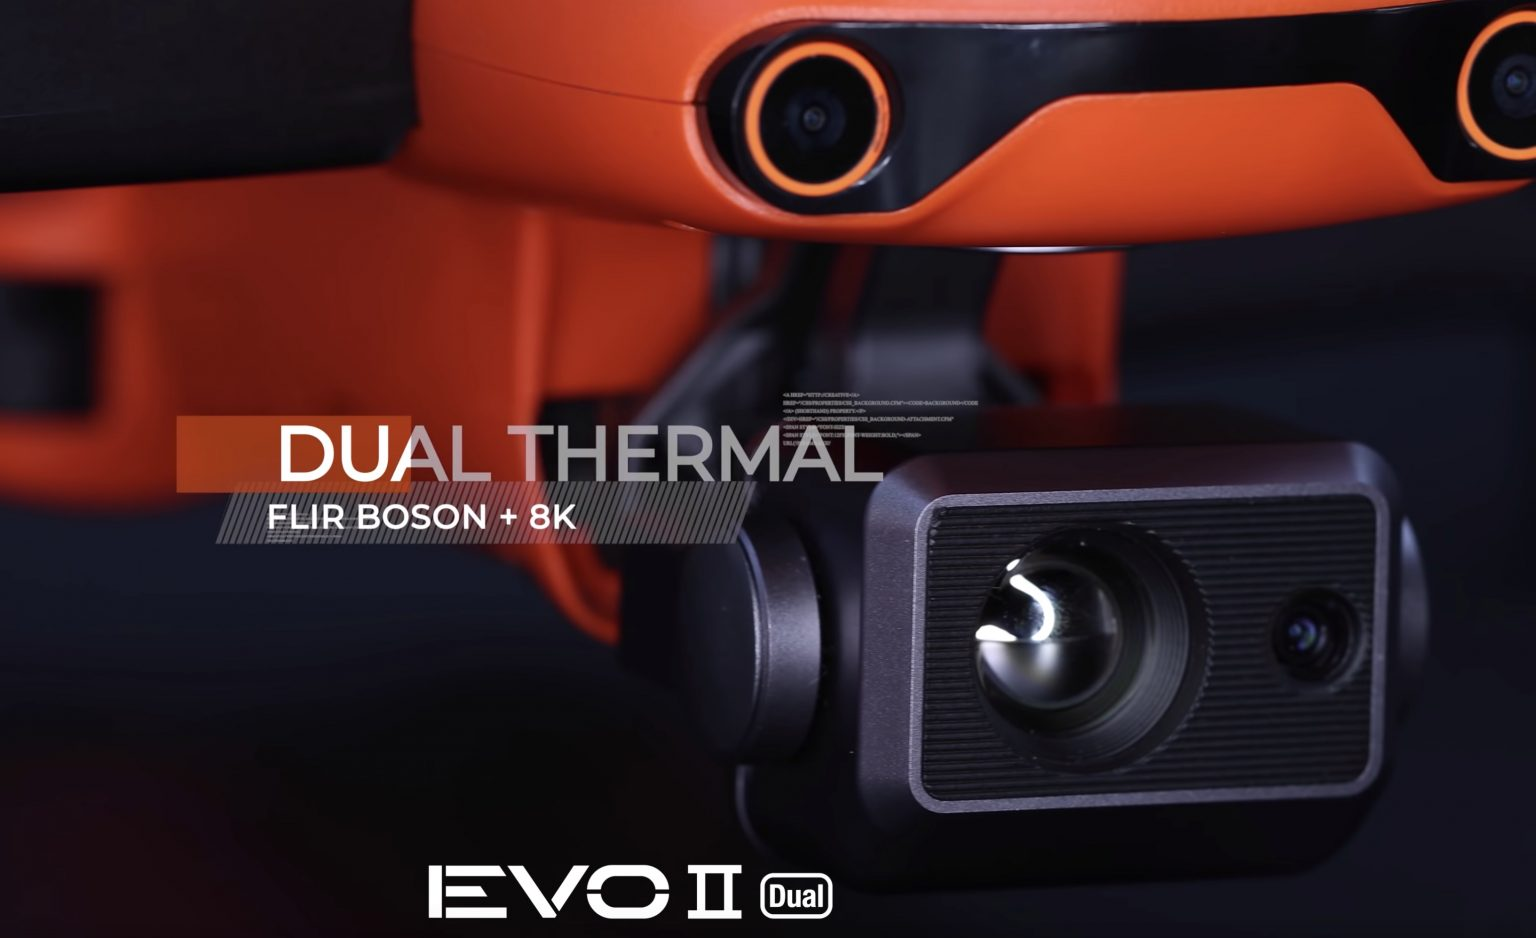 Autel EVO II Dual Thermal Camera